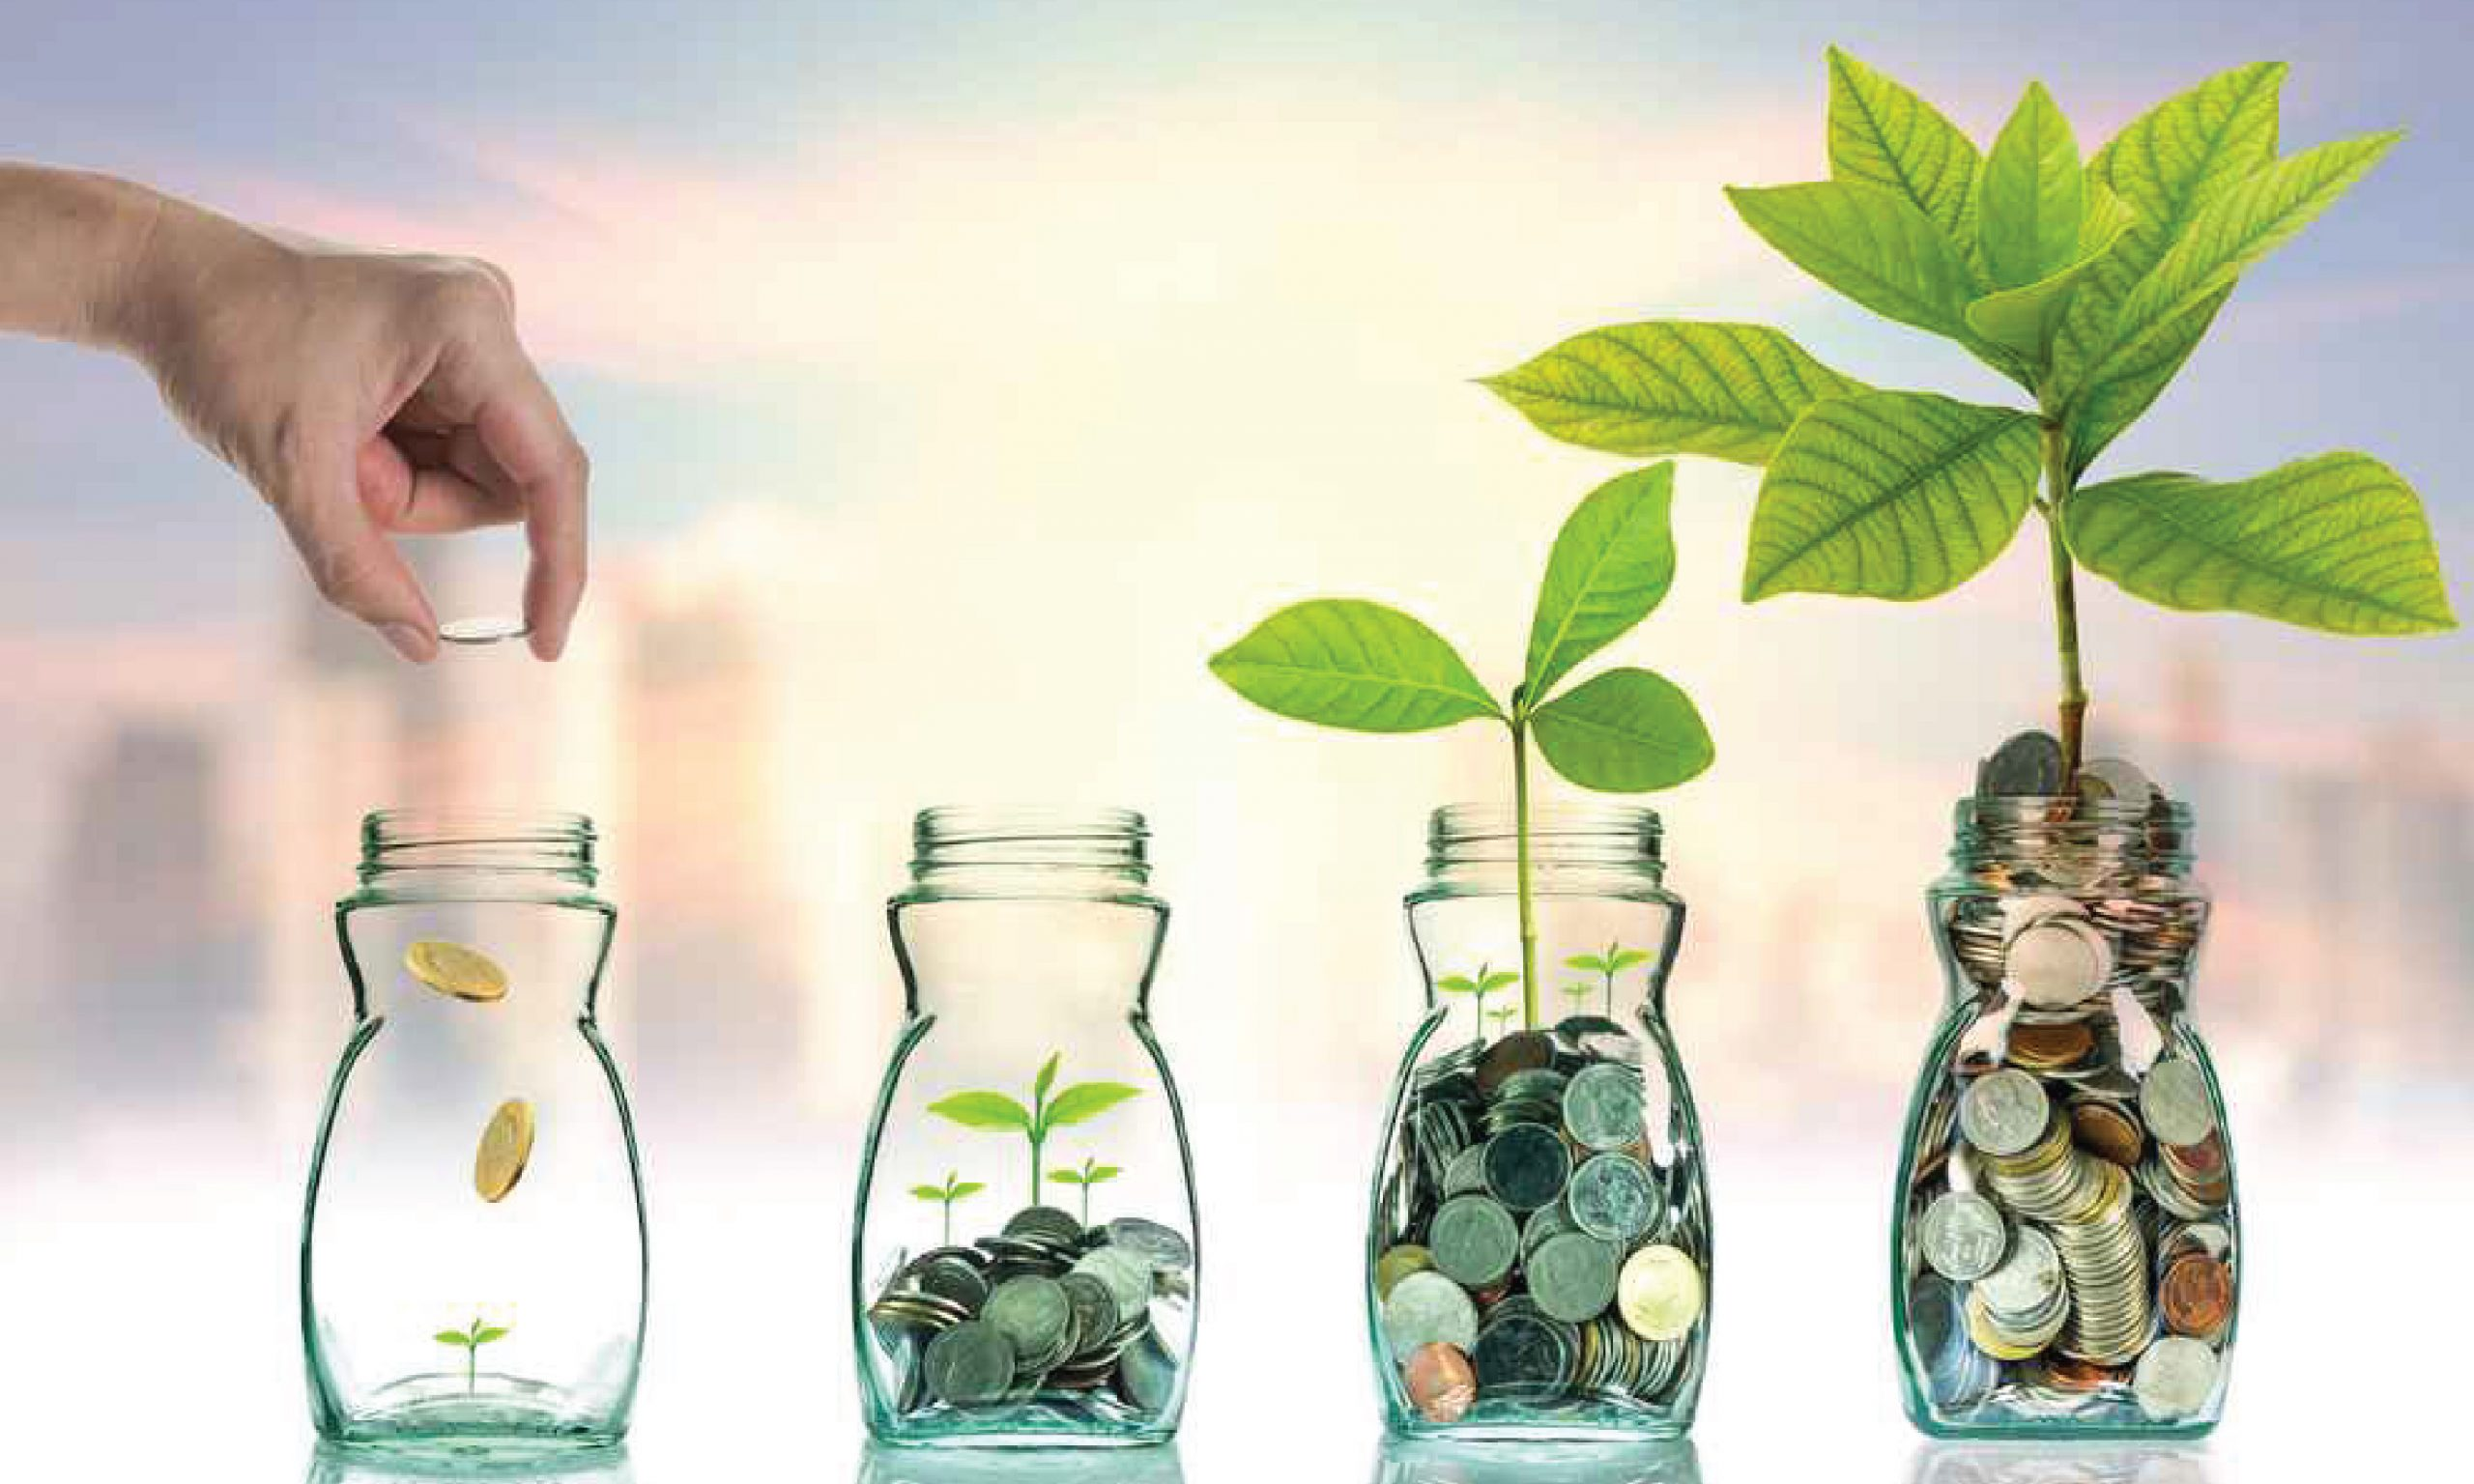 investment planners and financial advisors